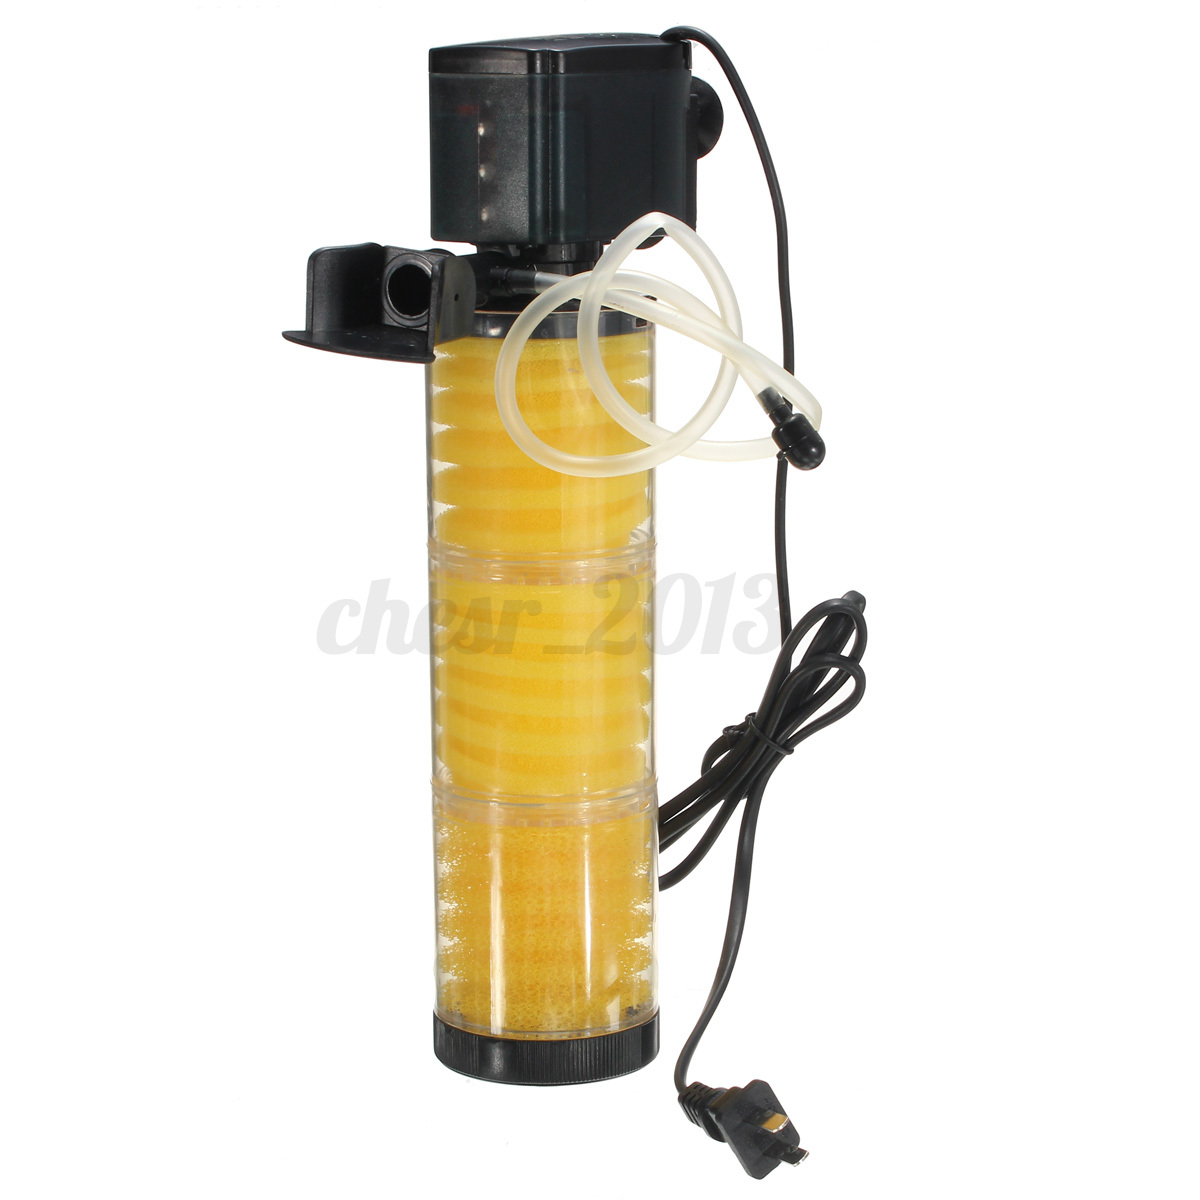 Fish tank filter not pumping water new small fish tank for Fish water pump